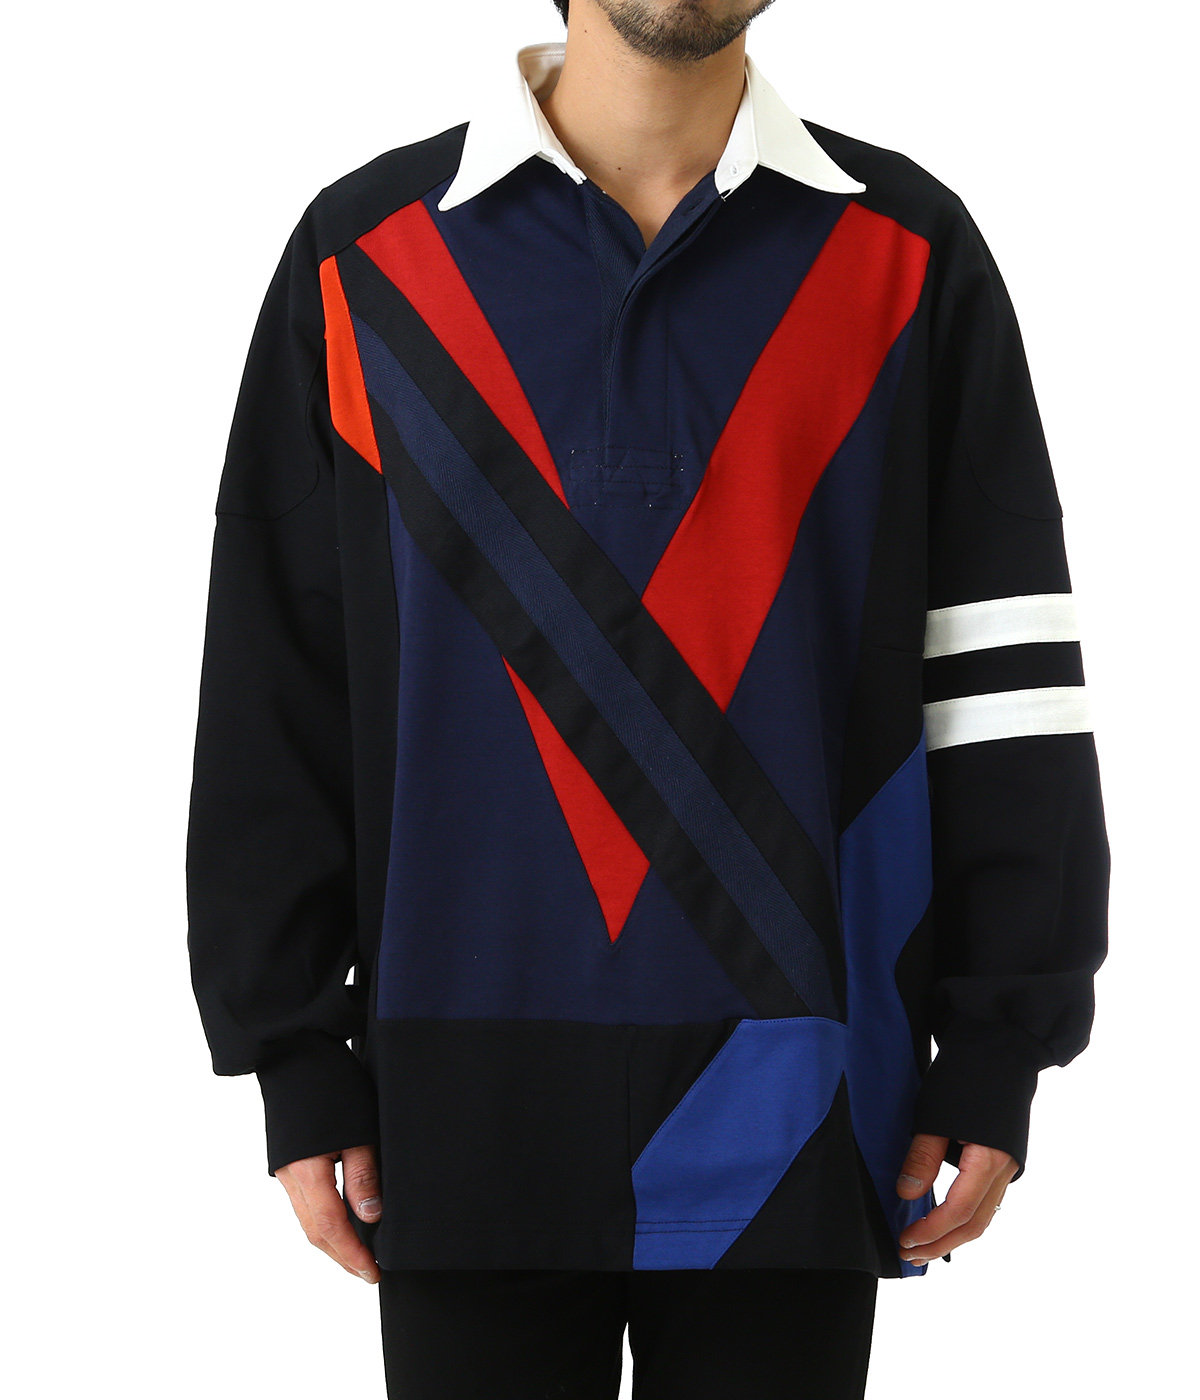 COLORFUL MIX RUGBY SHIRT